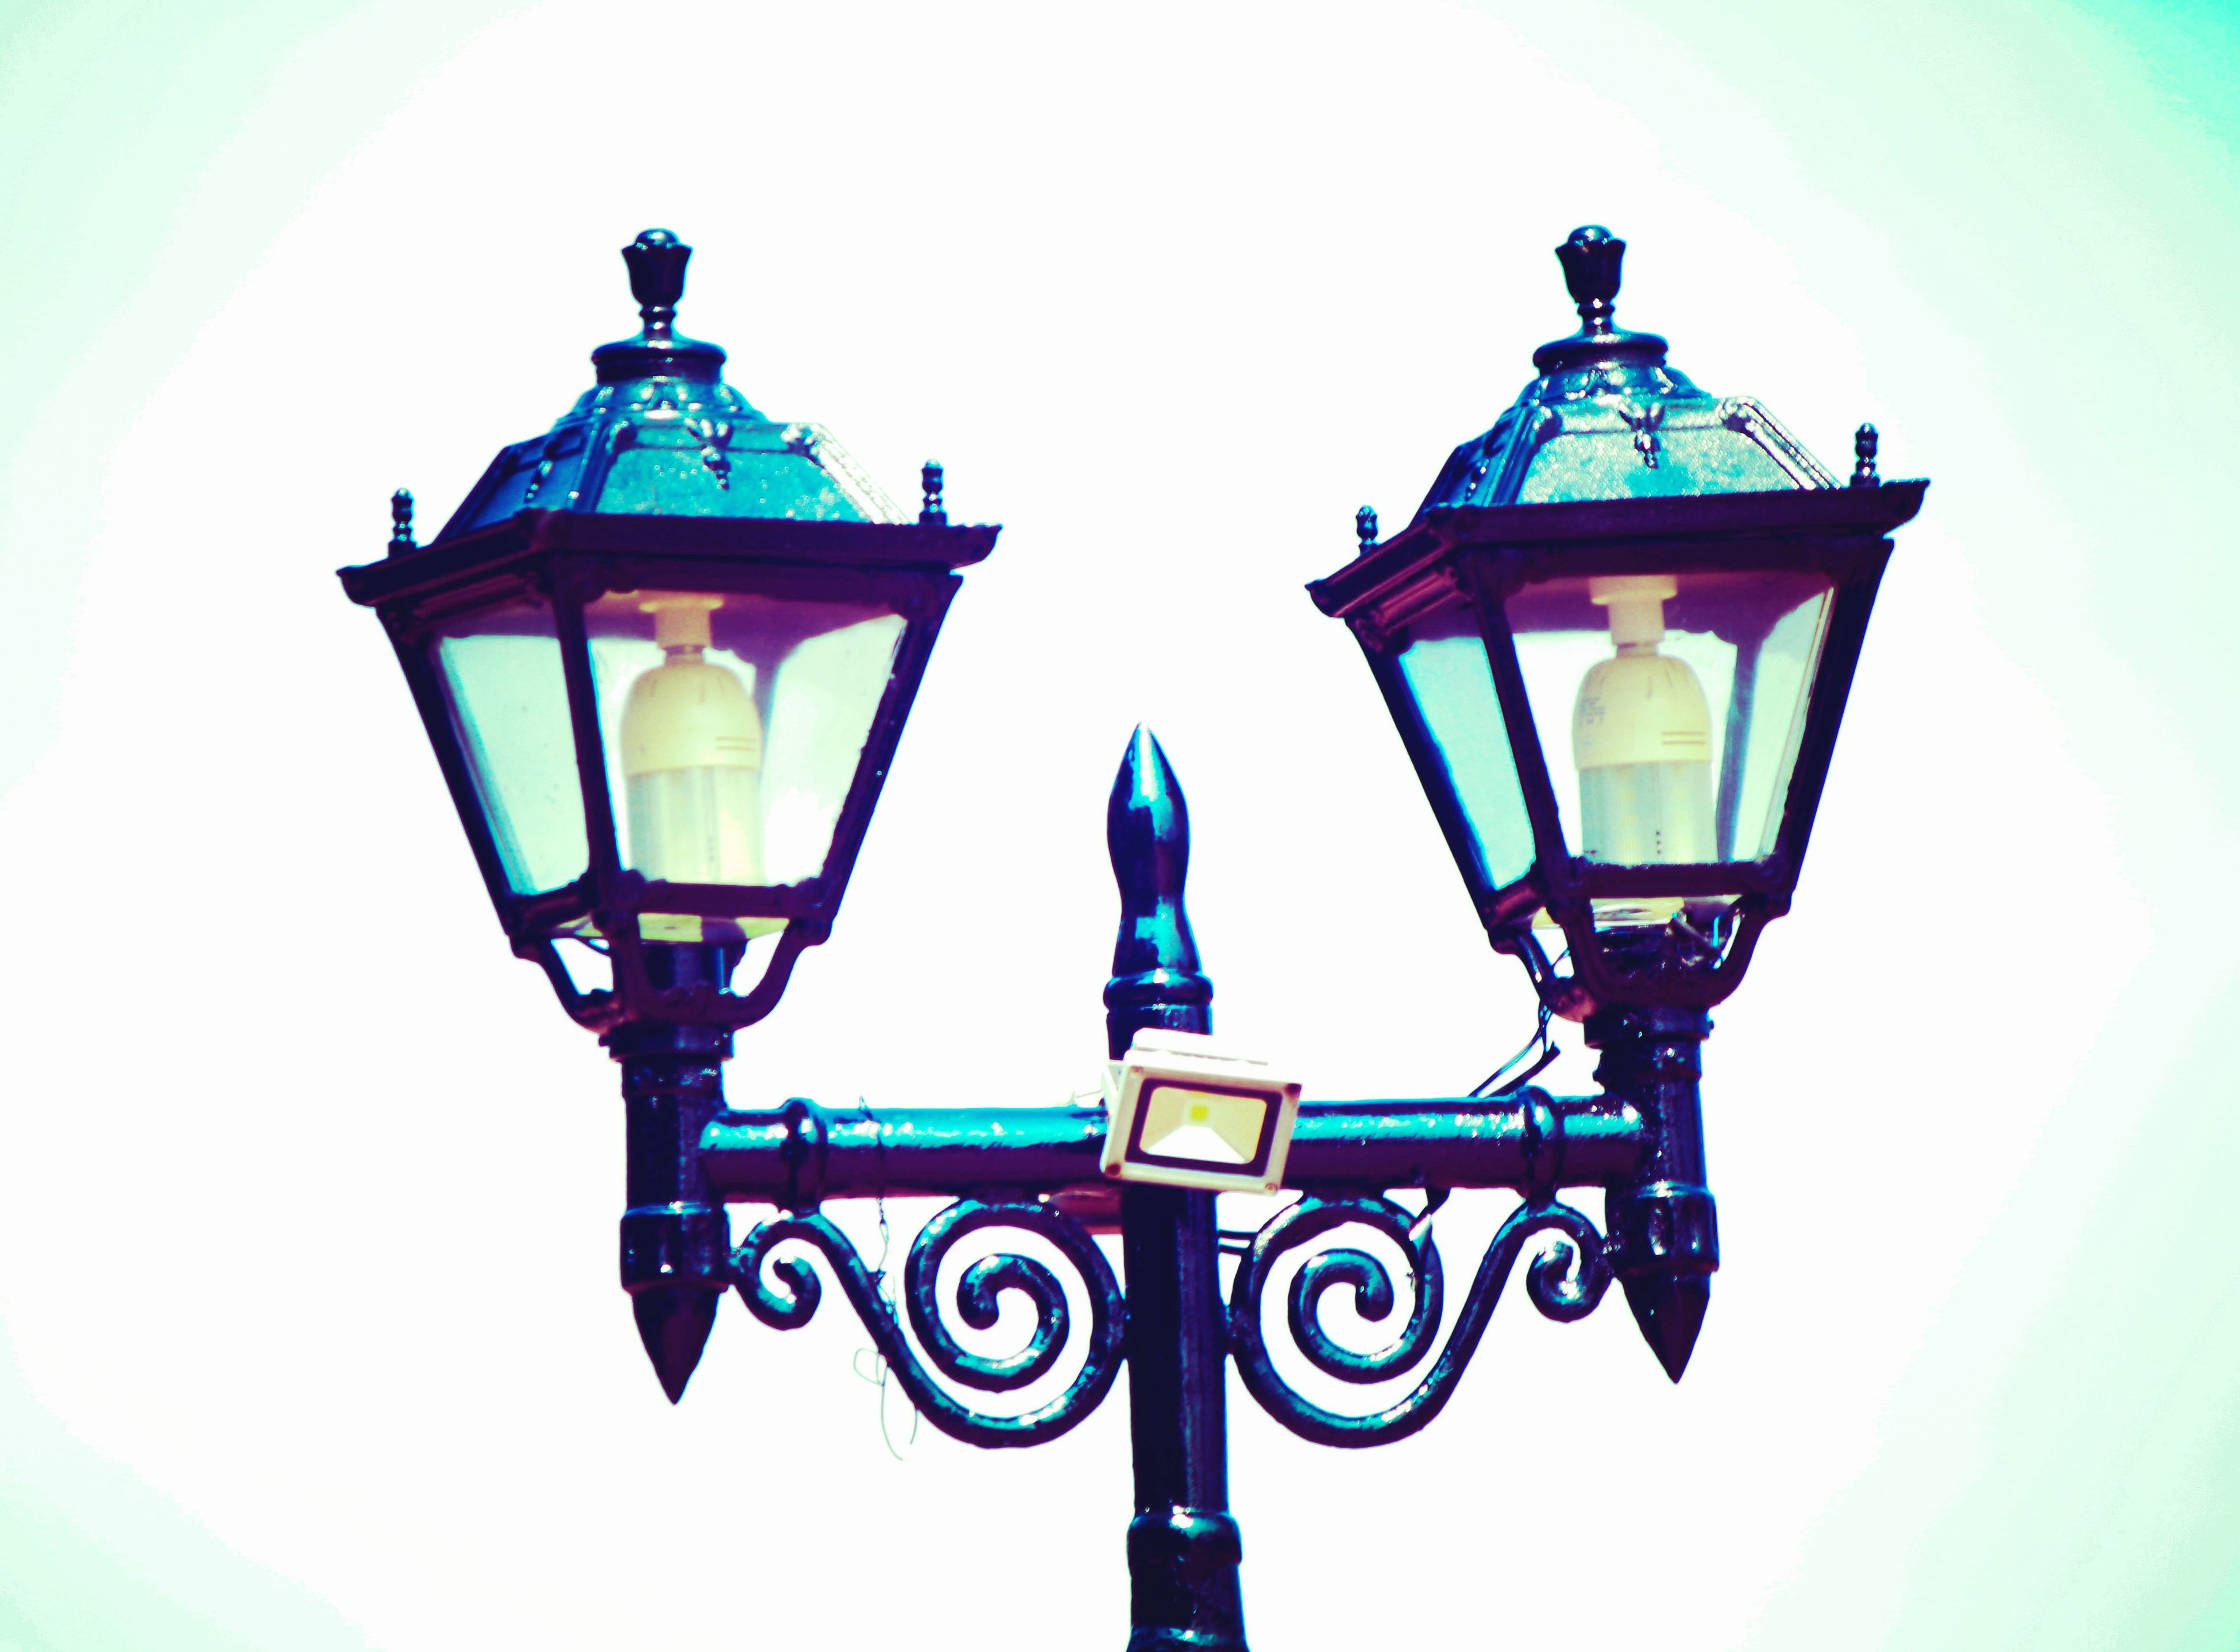 lighting equipment, street light, white background, illuminated, no people, clear sky, gas light, outdoors, sea, close-up, day, sky